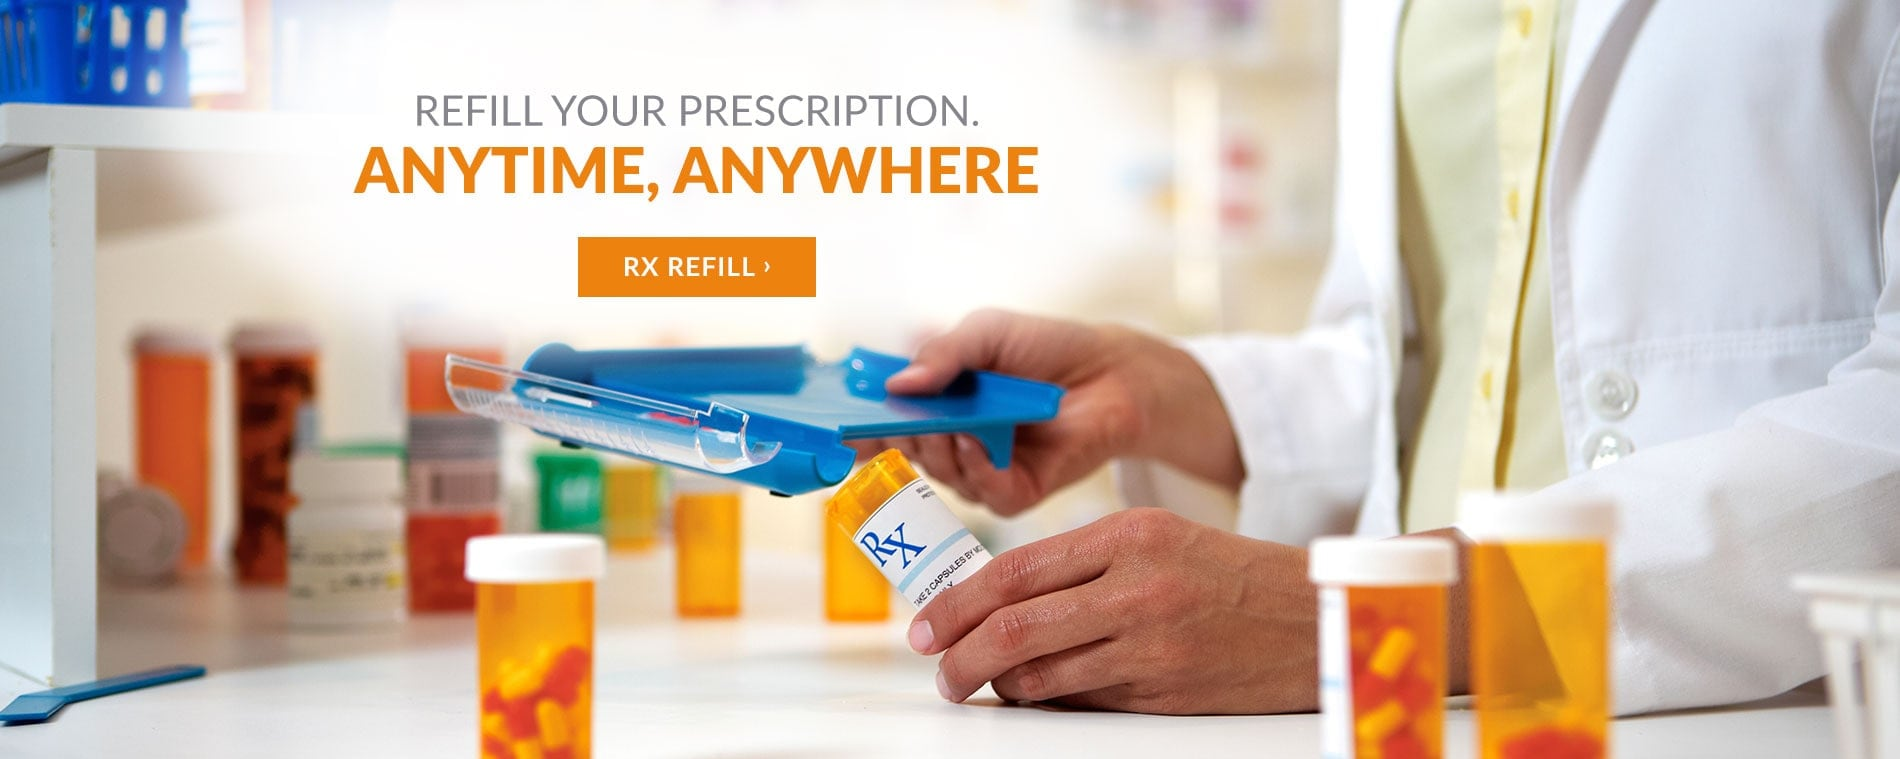 fedex pineville nc charlotte pharmacy concord pharmacy cannon ...